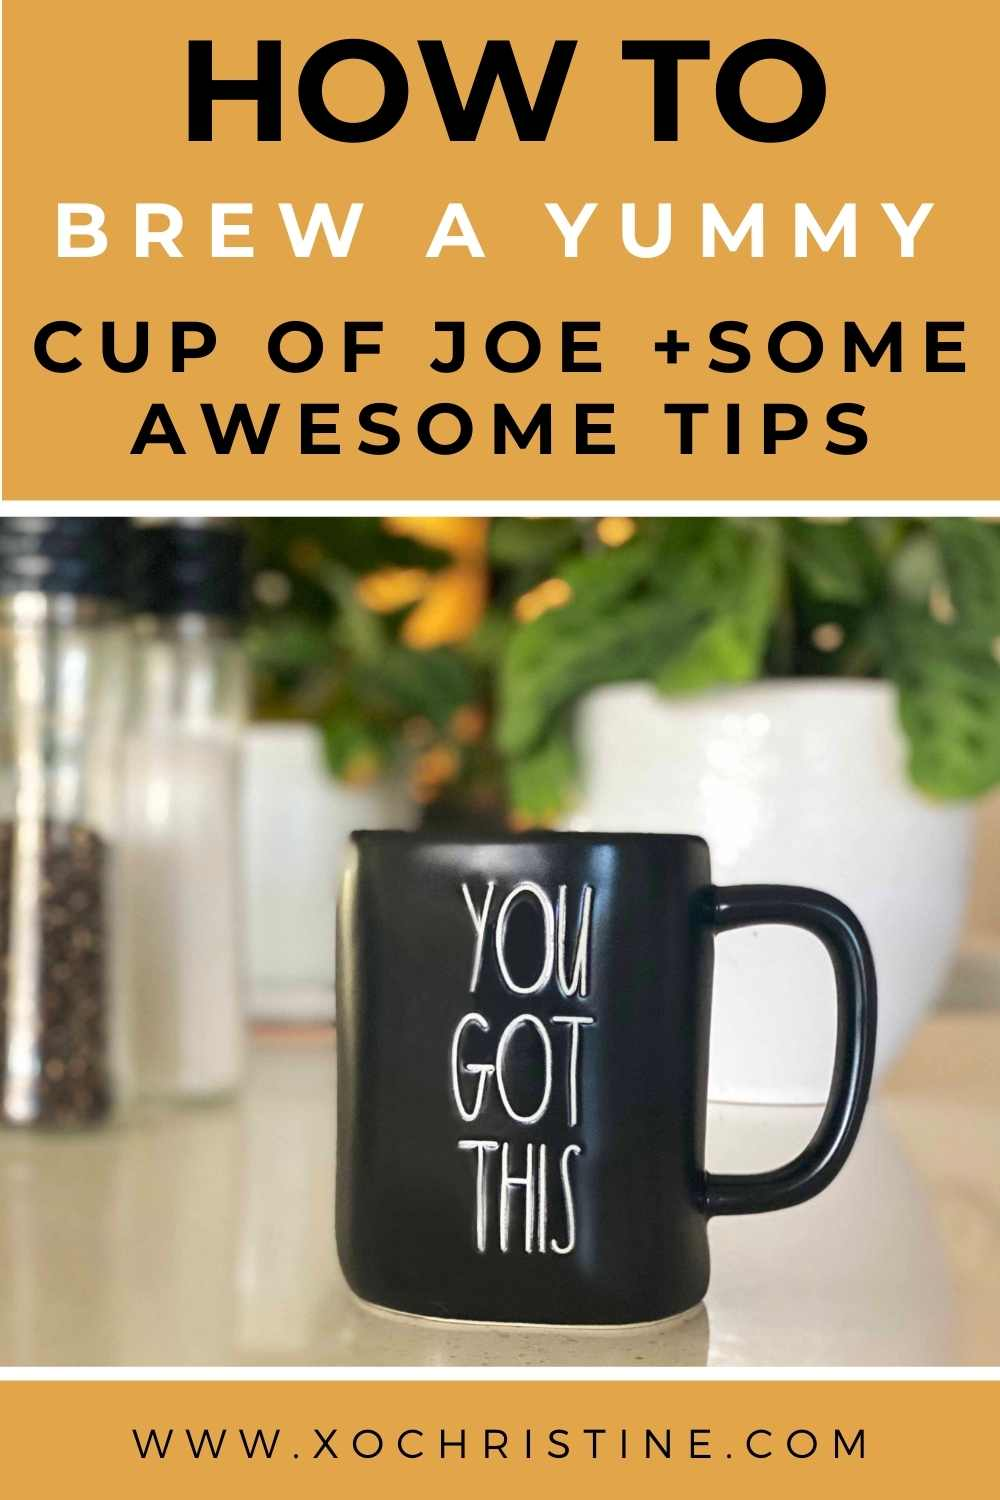 The best way to brew a yummy cup of joe at home